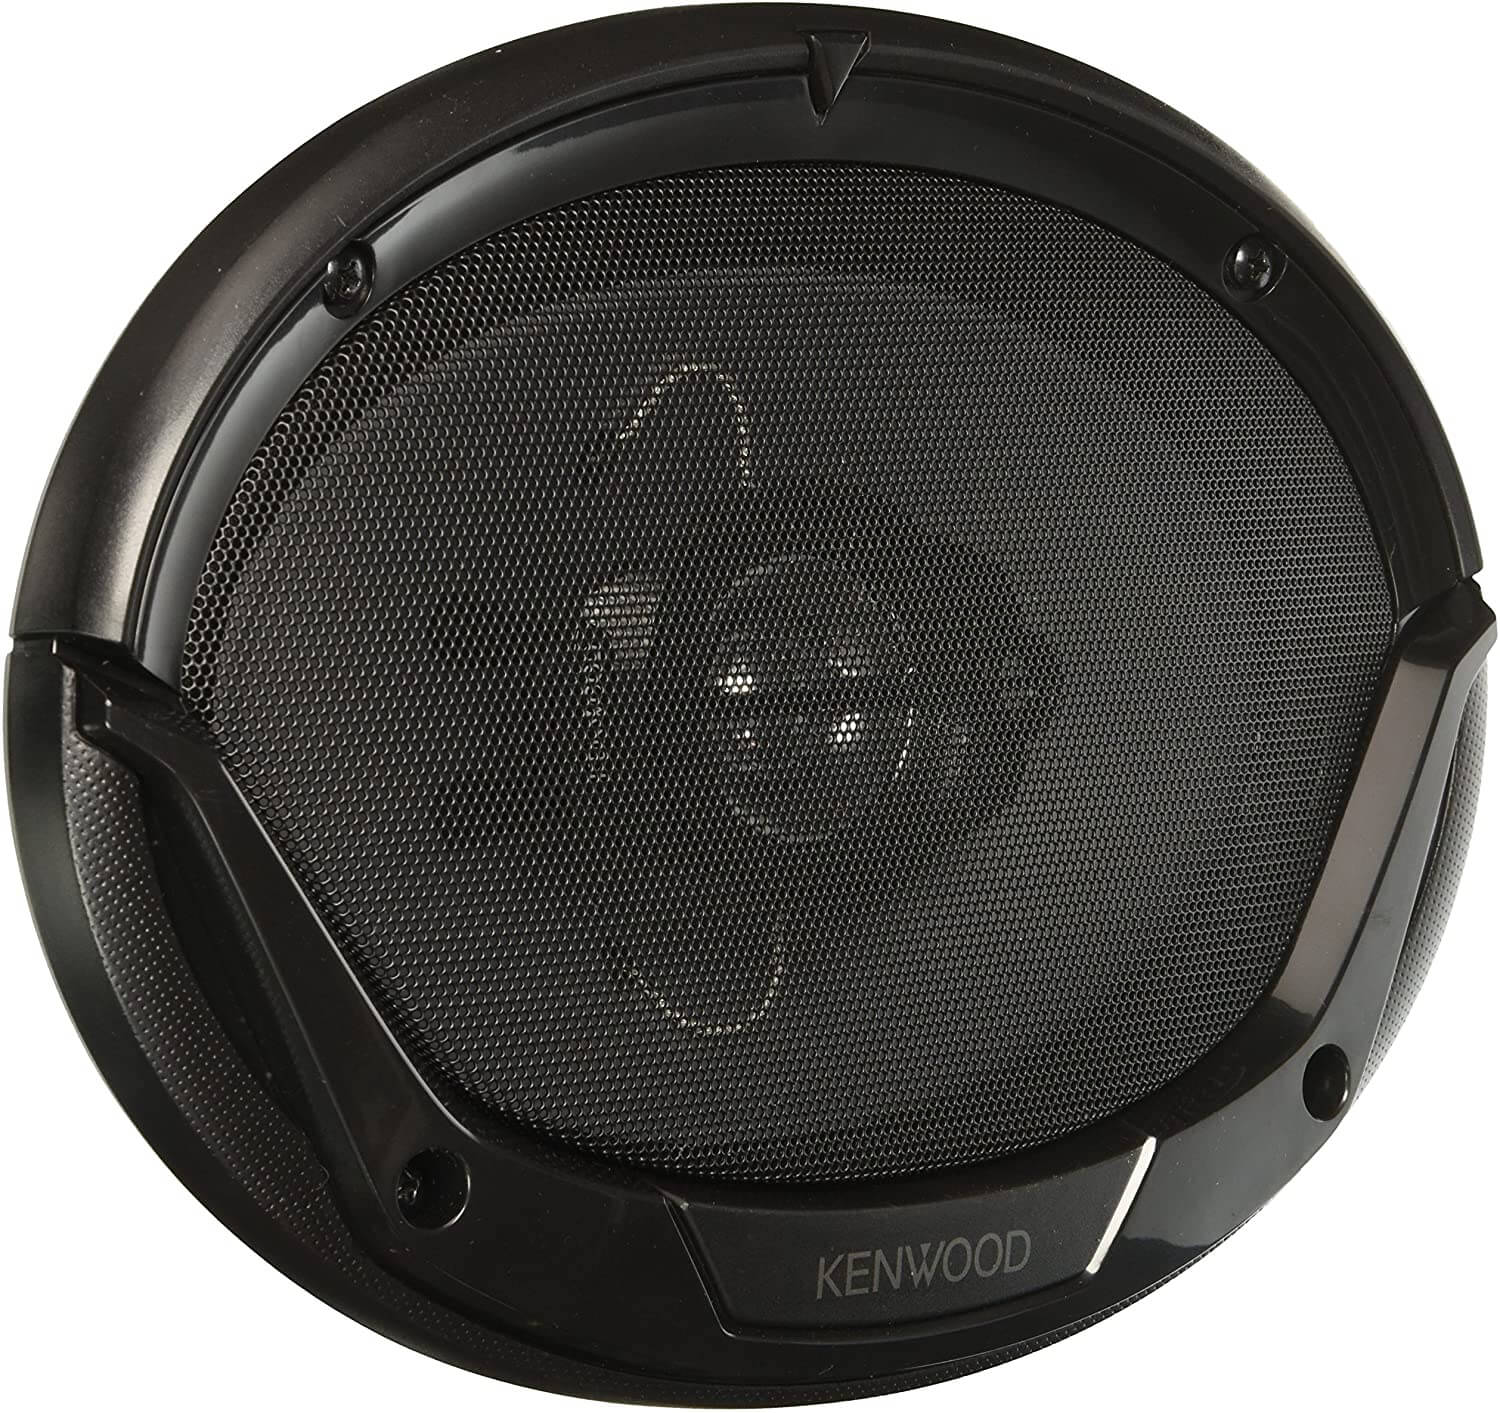 Kenwood KFC-6965S - probably the best budget speakers